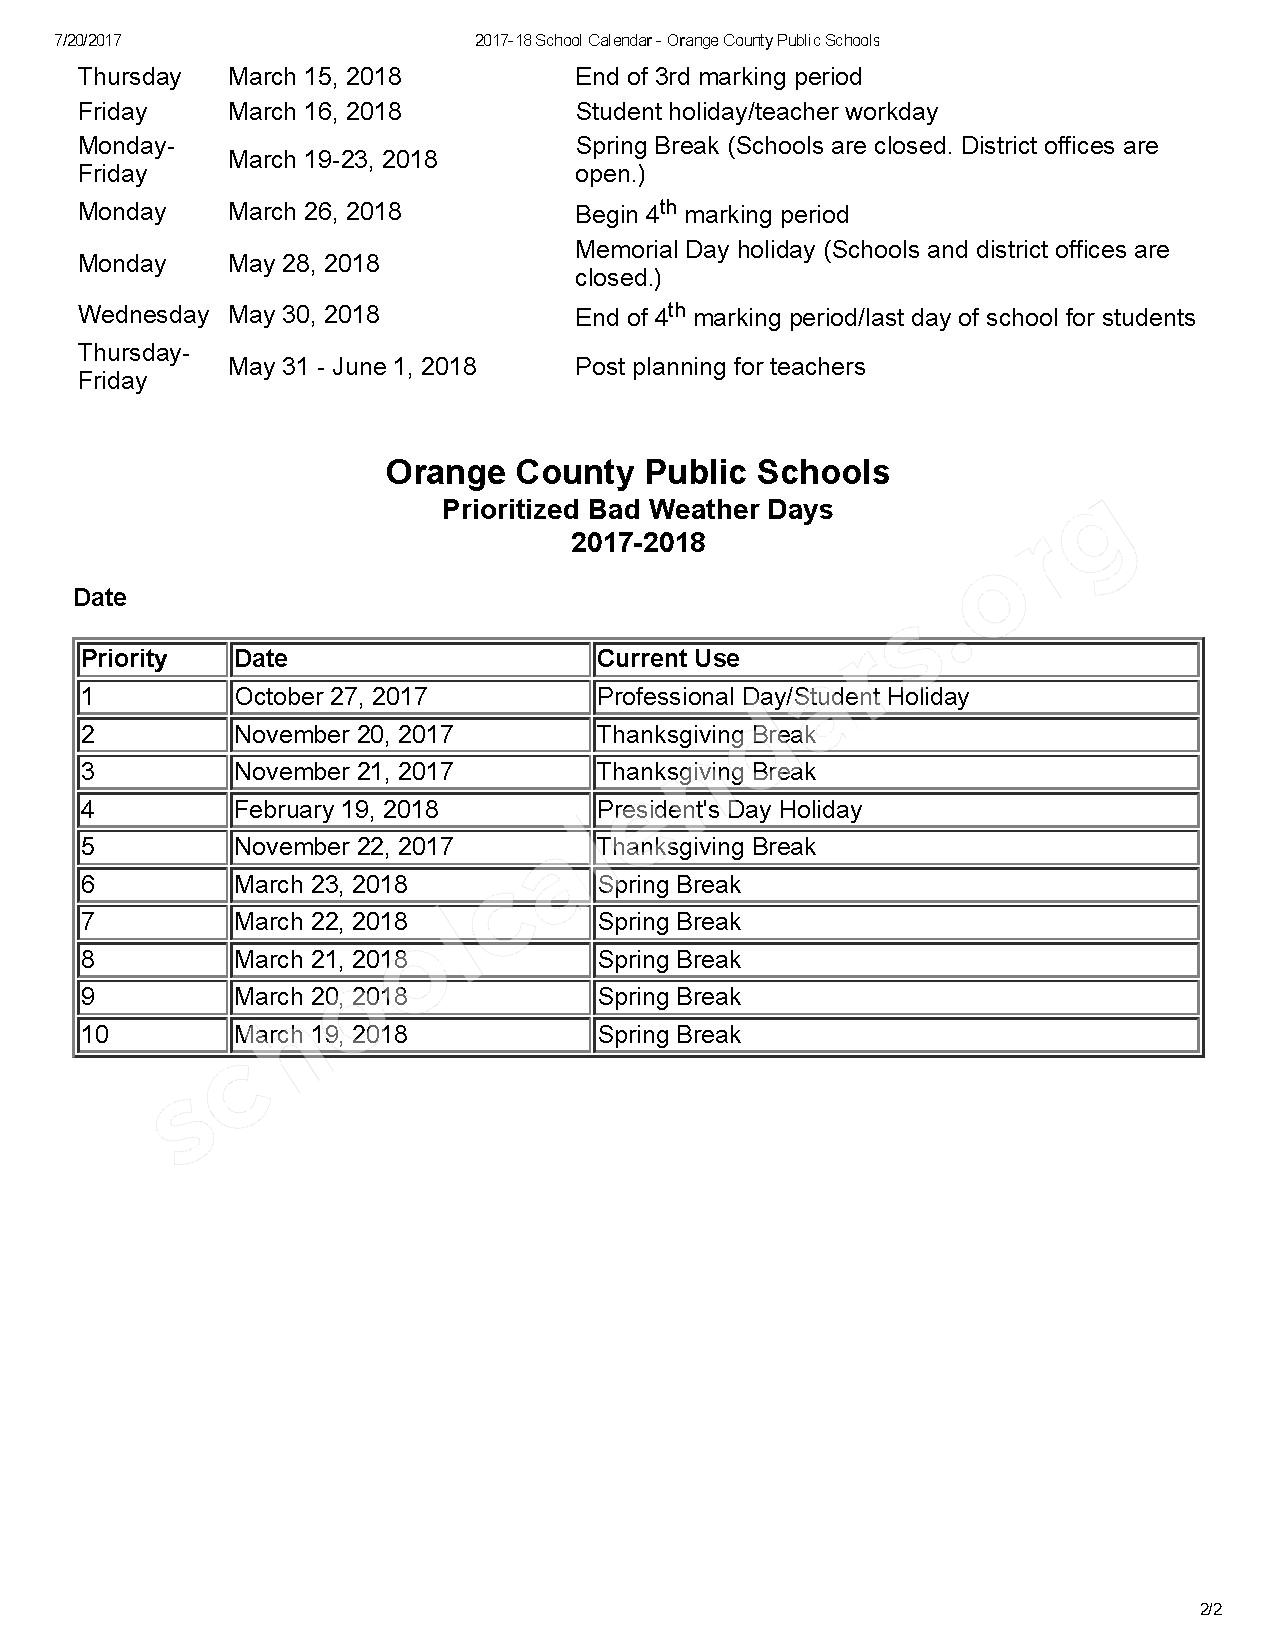 2017 - 2018 OCPS Calendar – Central Florida Leadership Academy – page 2